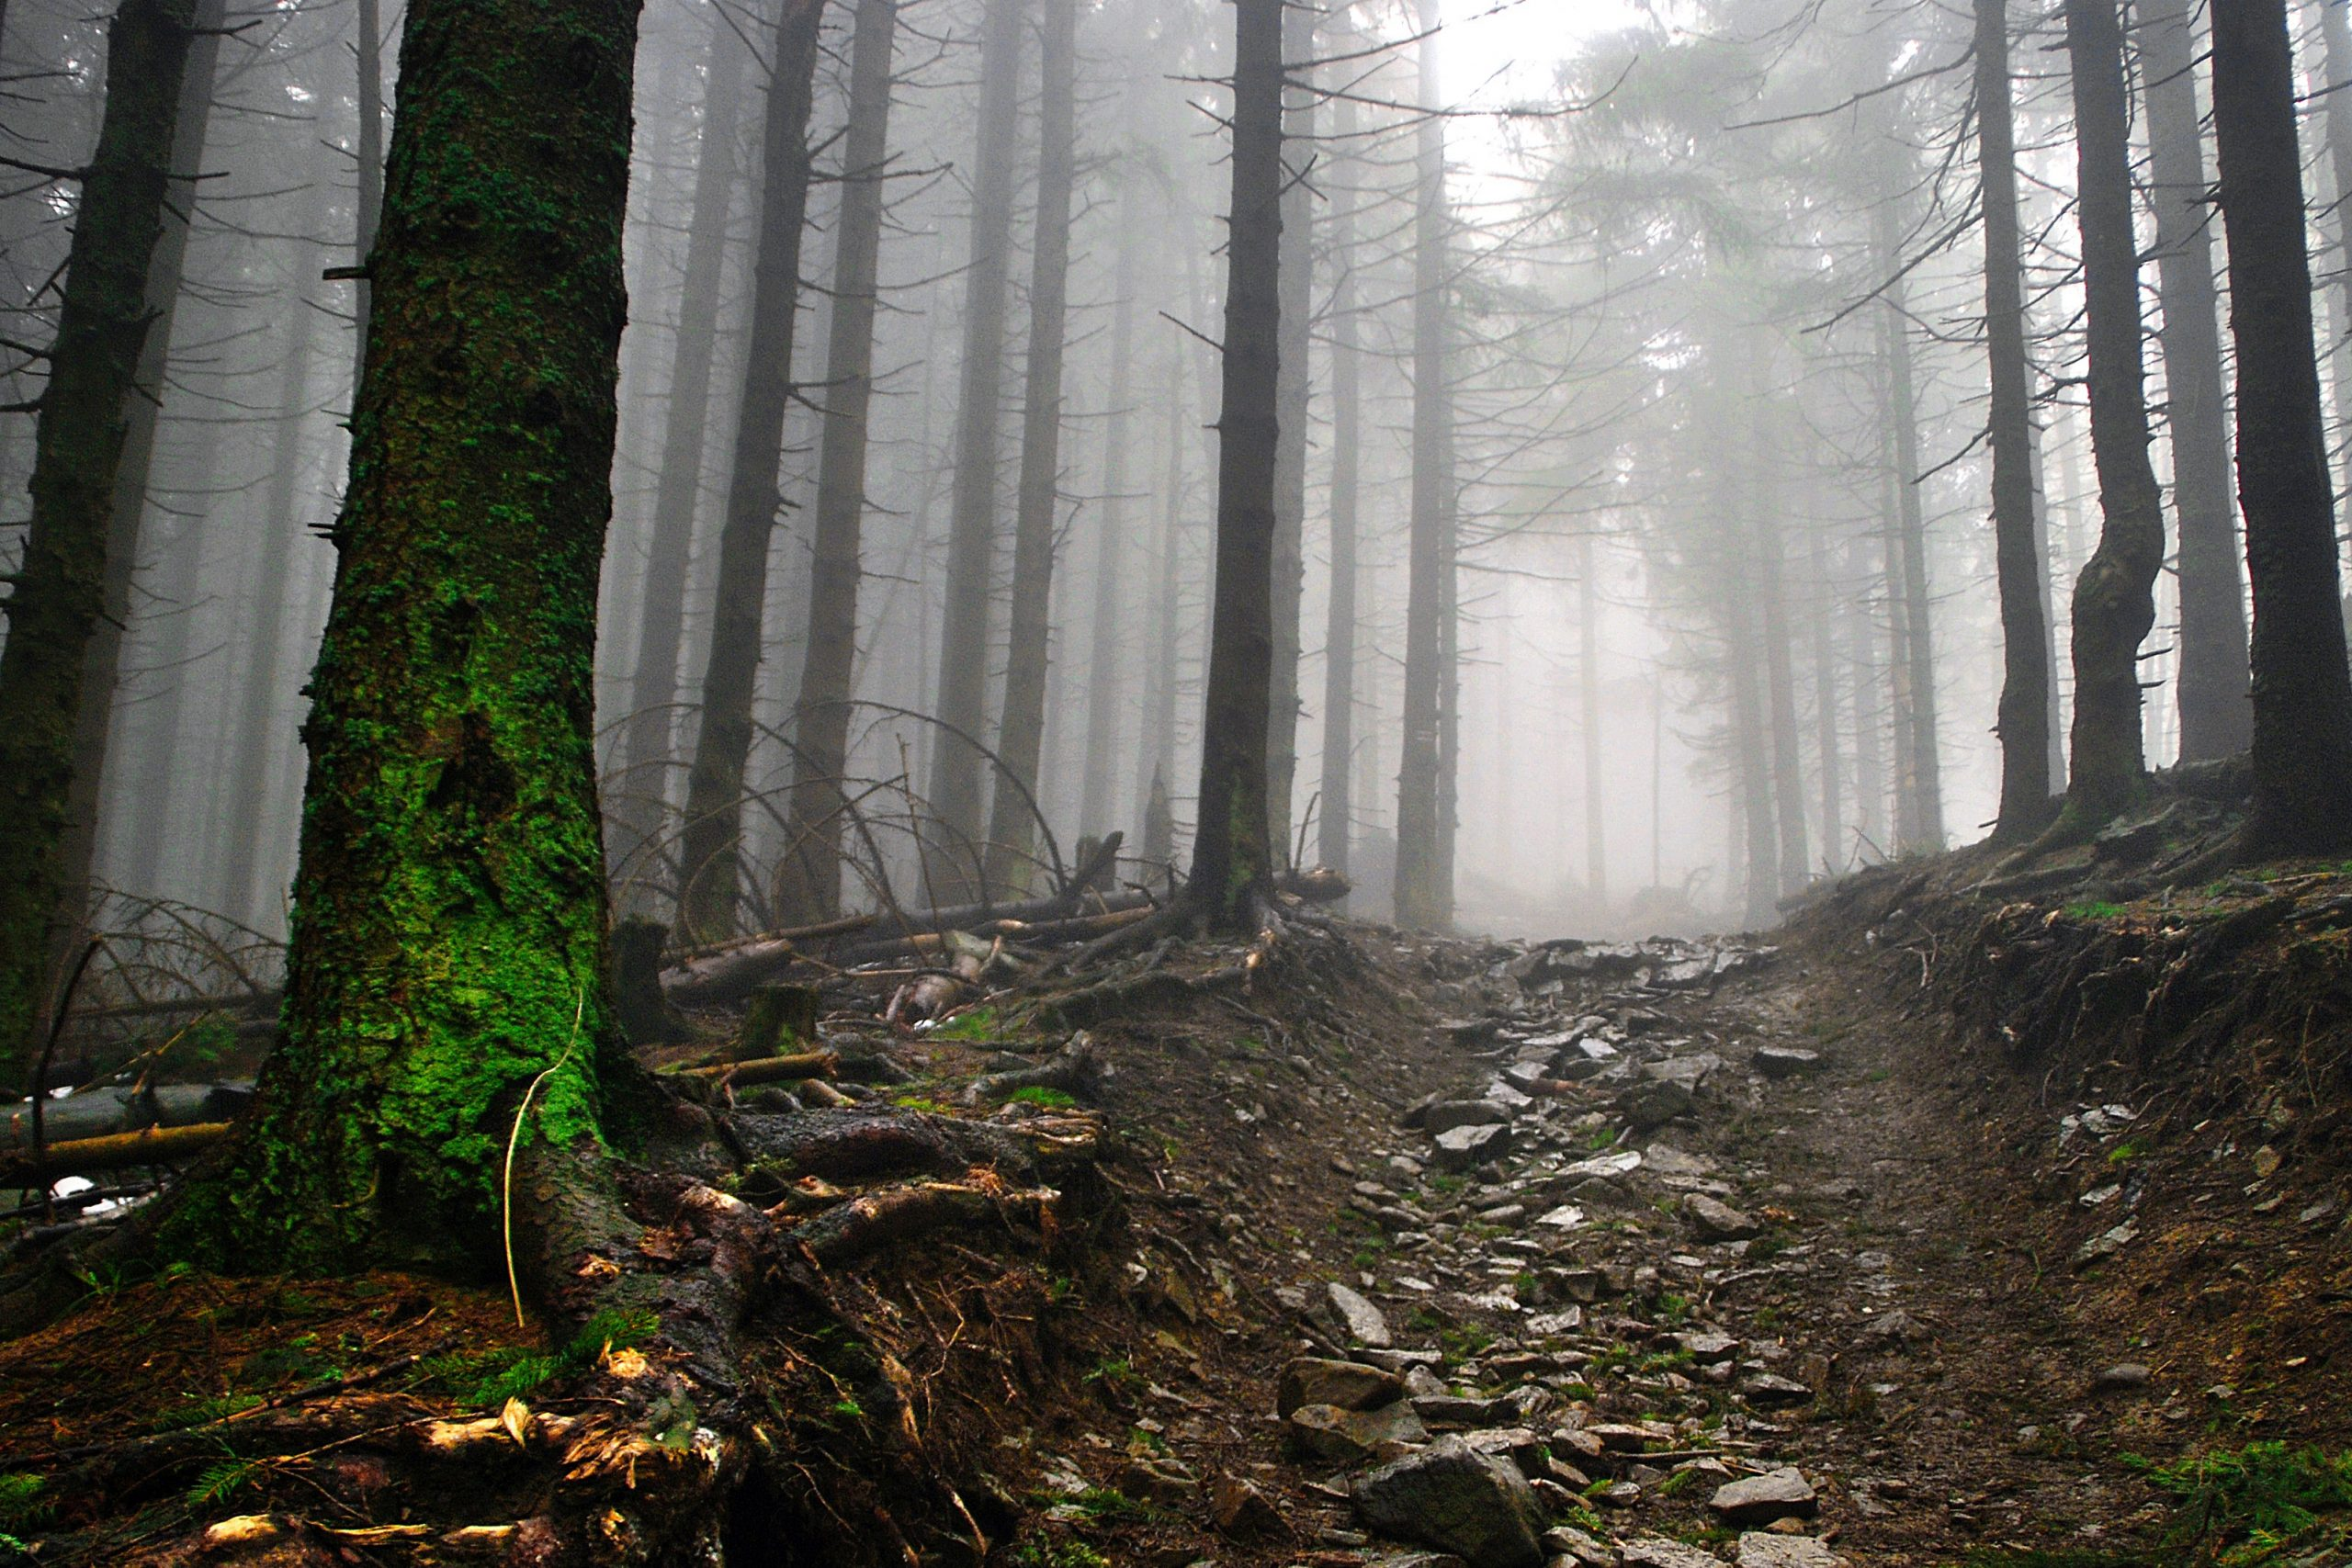 Rocky path in the woods